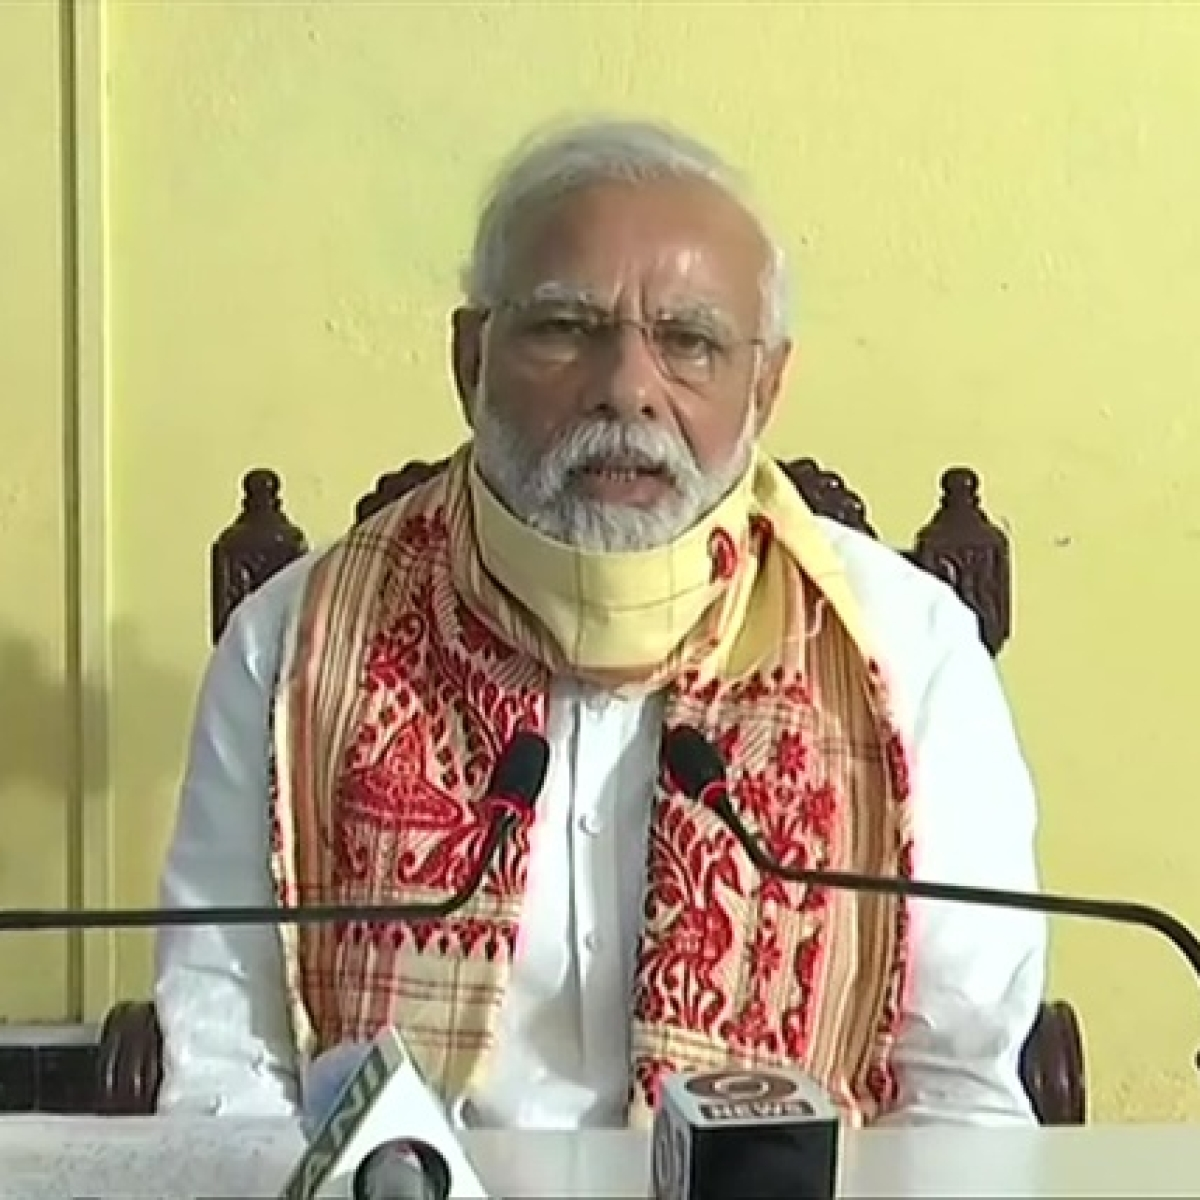 Cyclone Amphan: PM Modi announces Rs 1,000 cr relief package for West Bengal